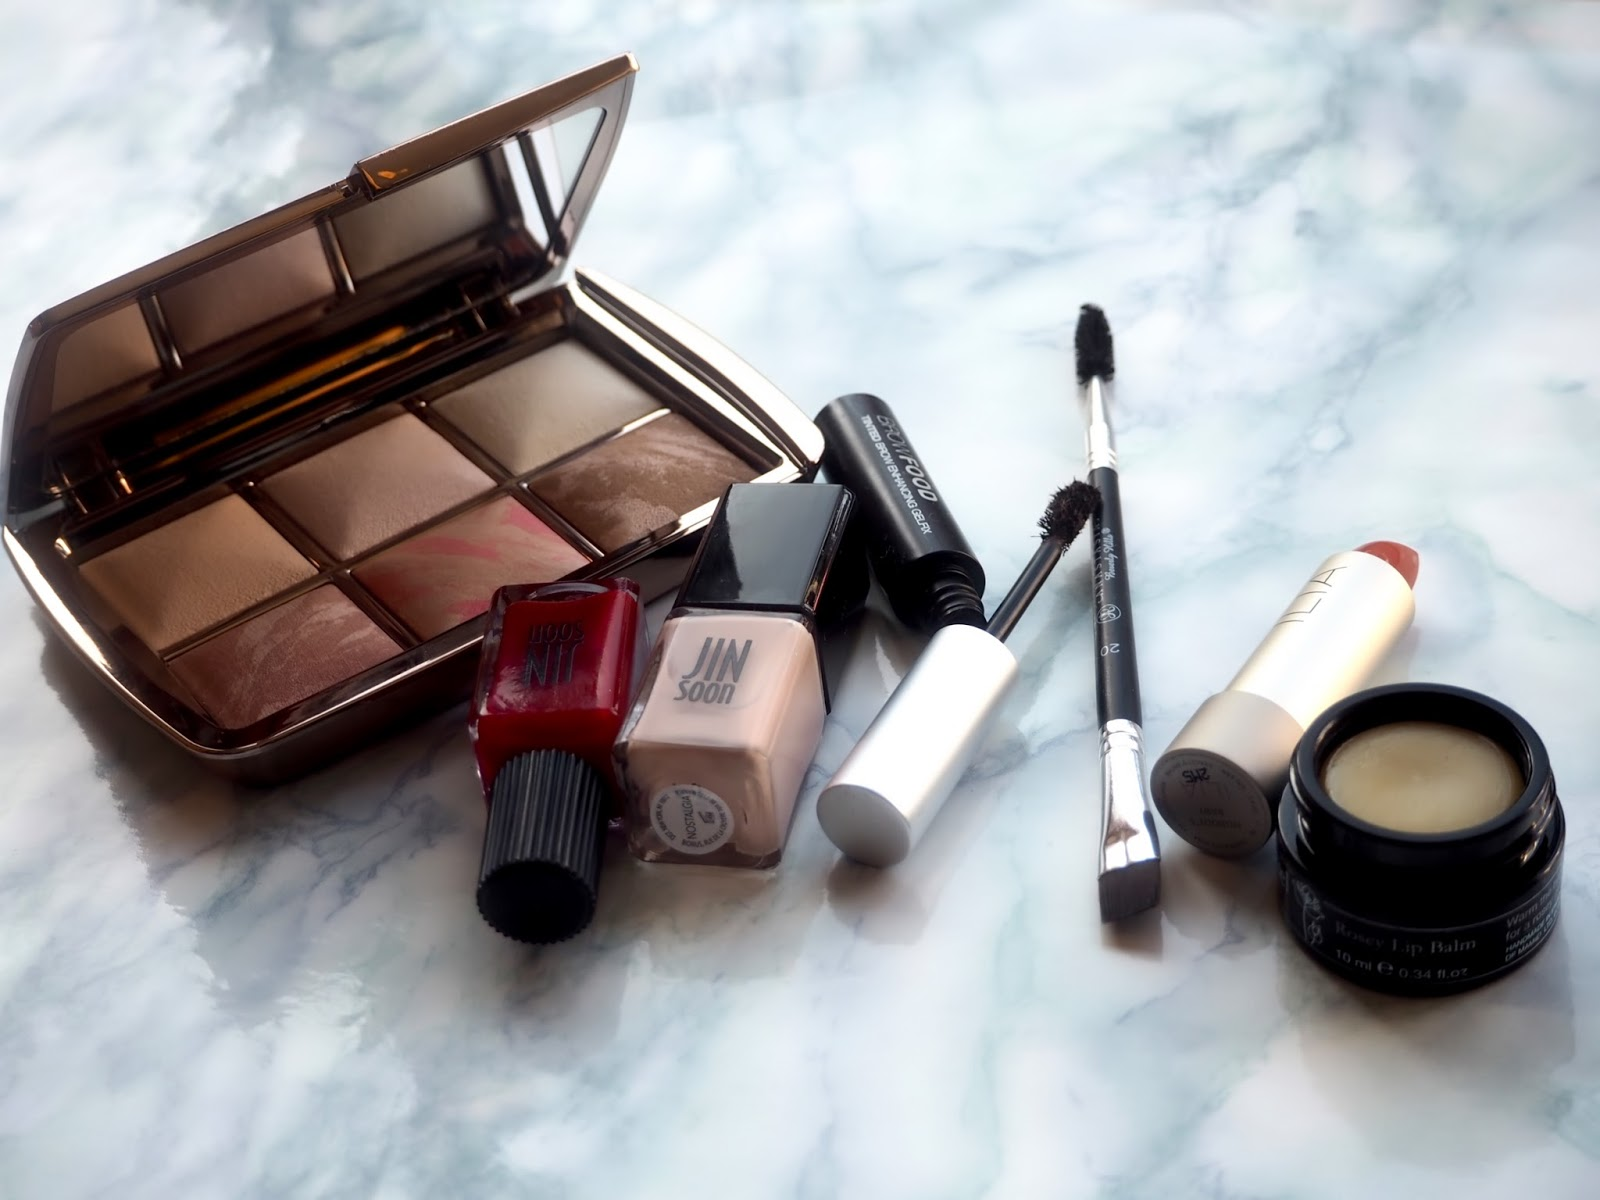 Net-a-Porter Luxury Beauty Haul